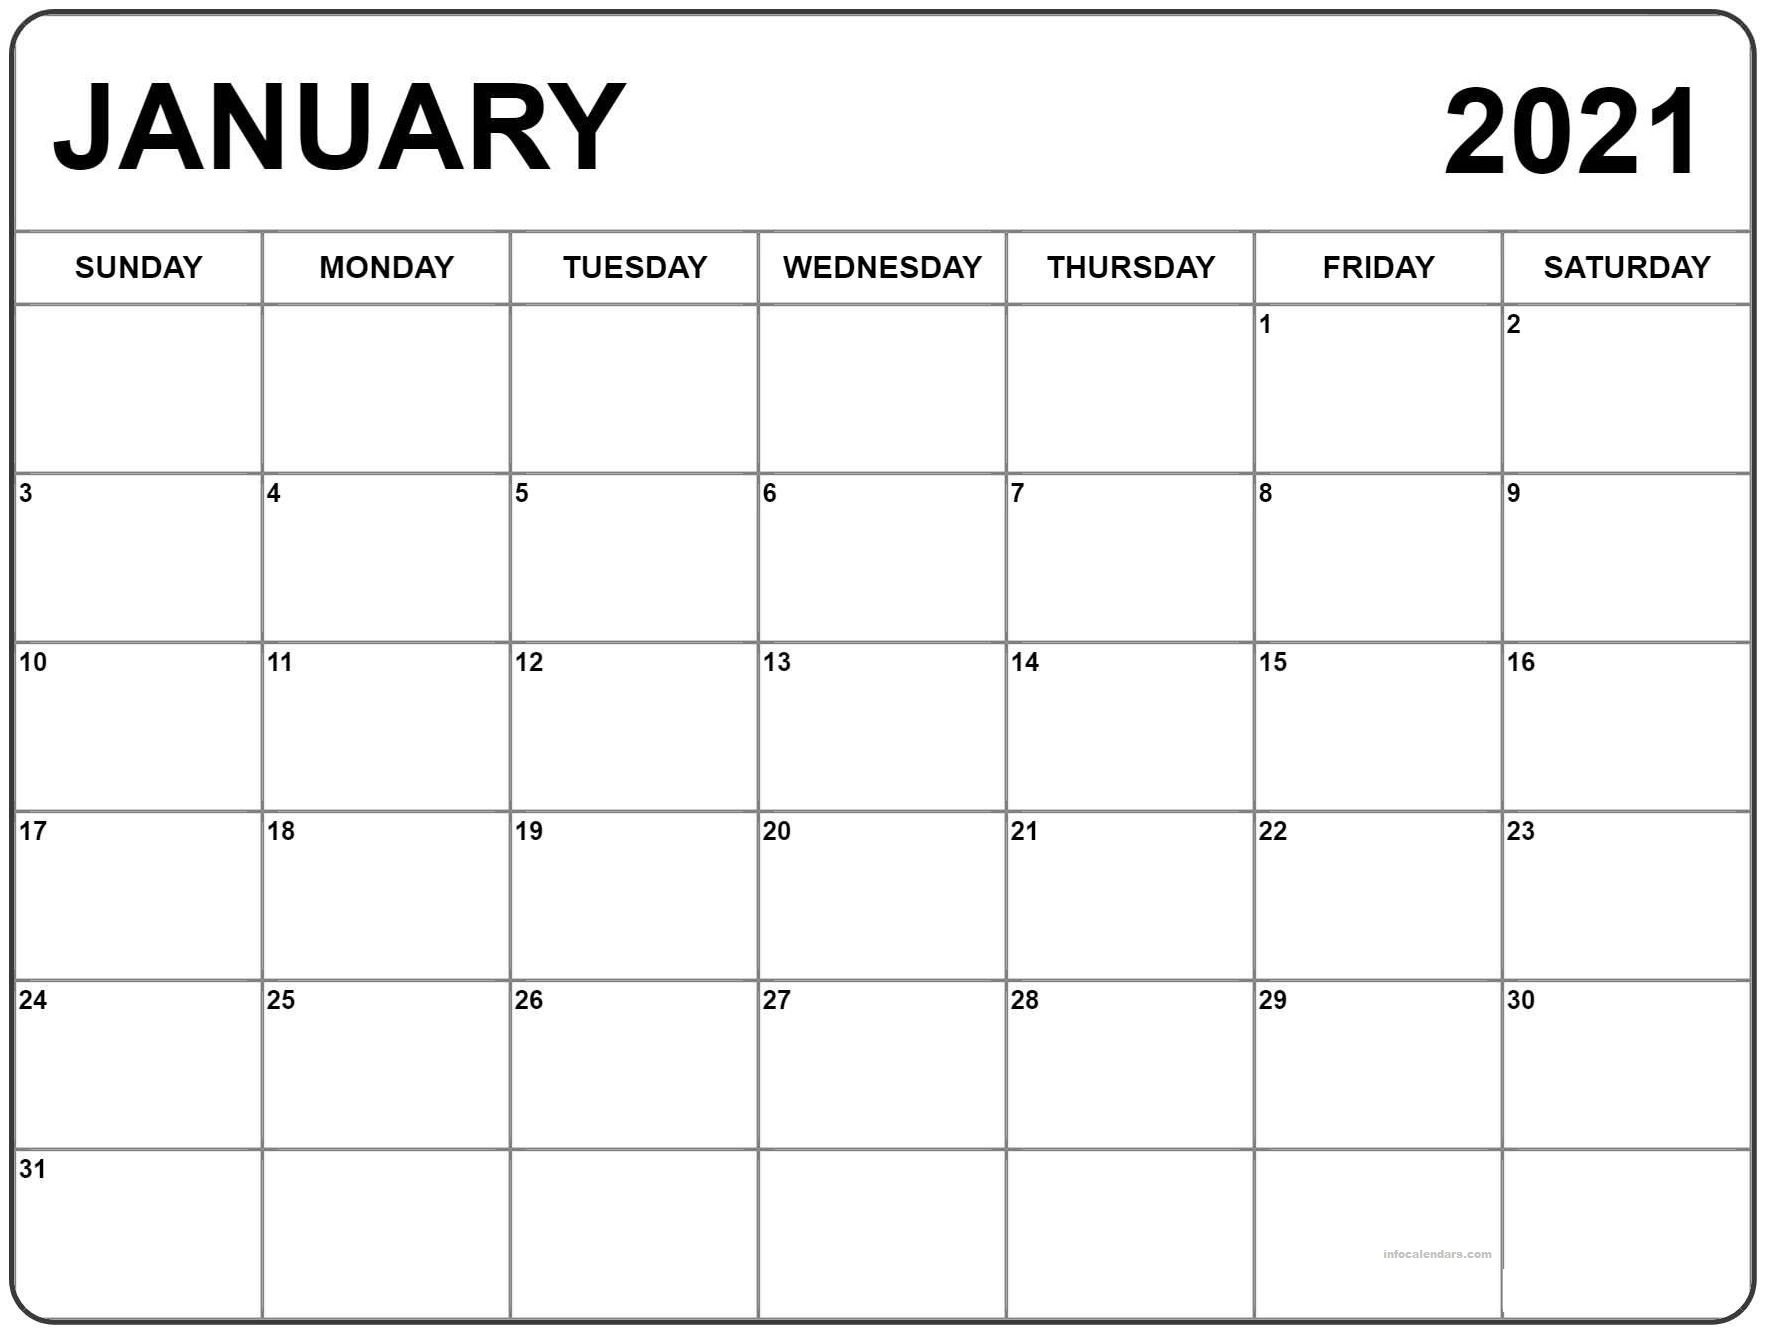 January 2021 Calendar Template Notes